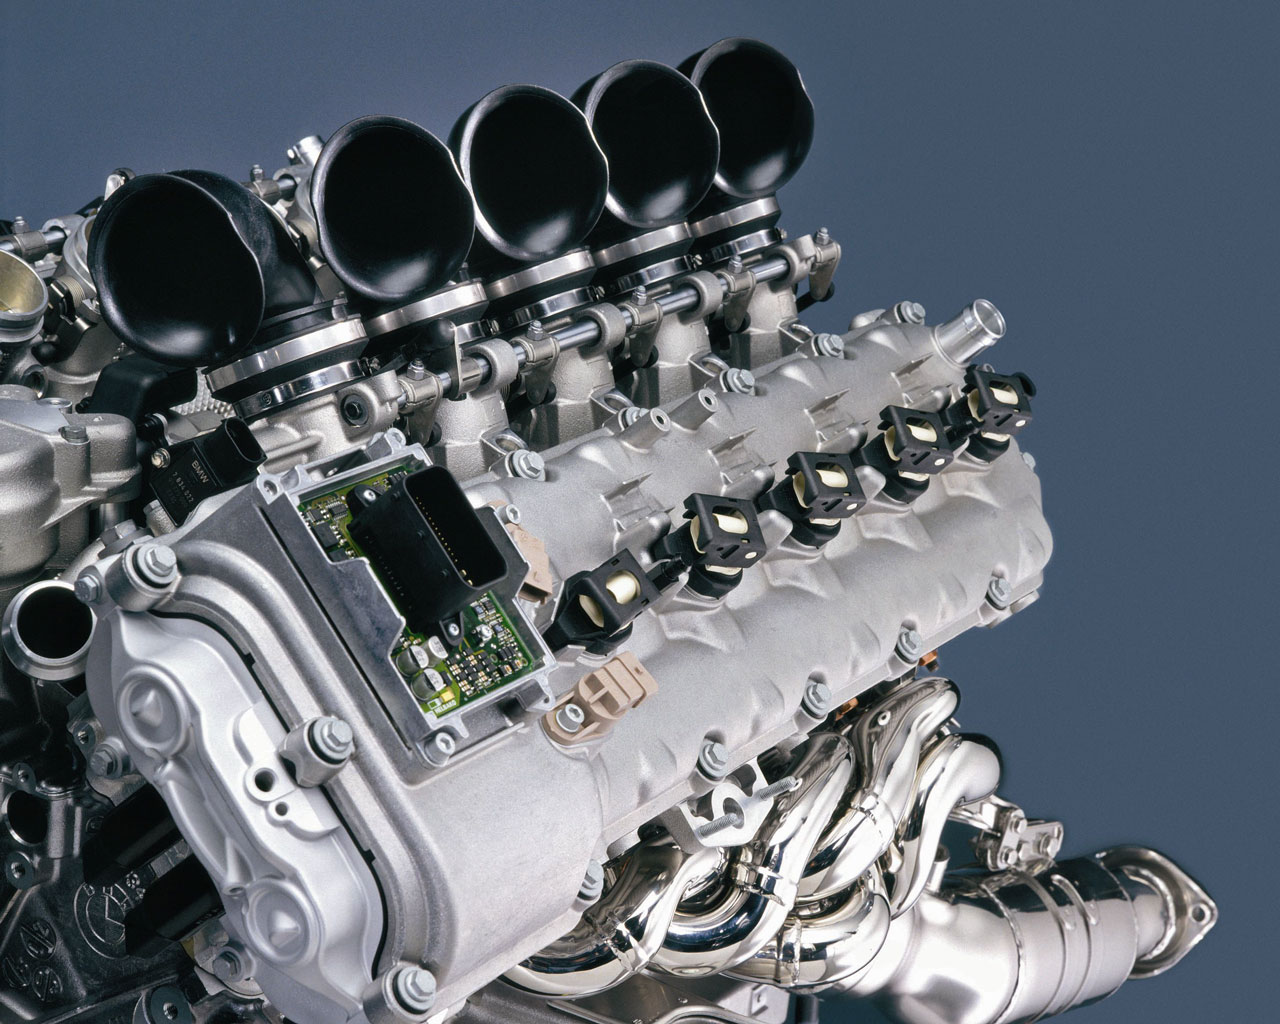 Engines | Cryogenic Metal Treatment for Motorsports | Cryogenic Treatment for Turbochargers